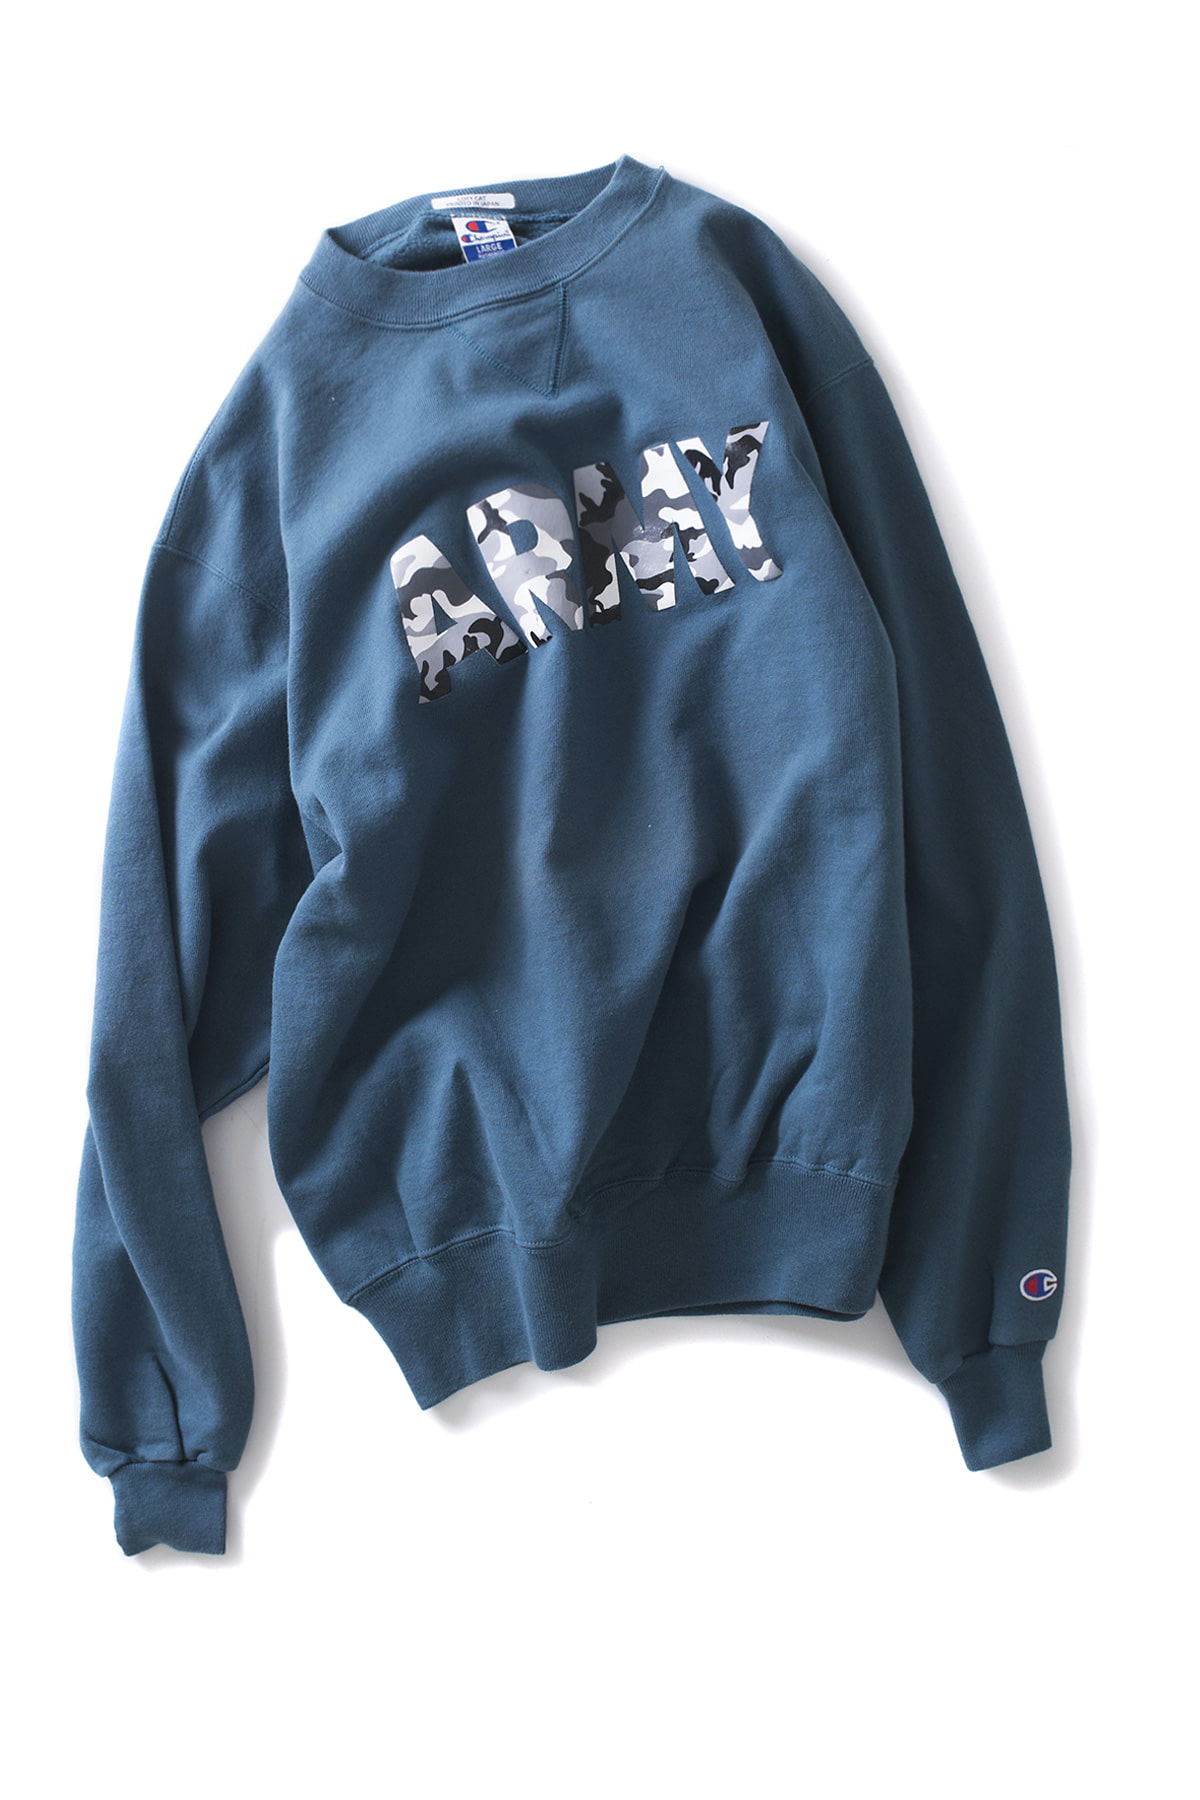 Copy Cat : Champ Crew Neck (Blue Green x Grey Military)